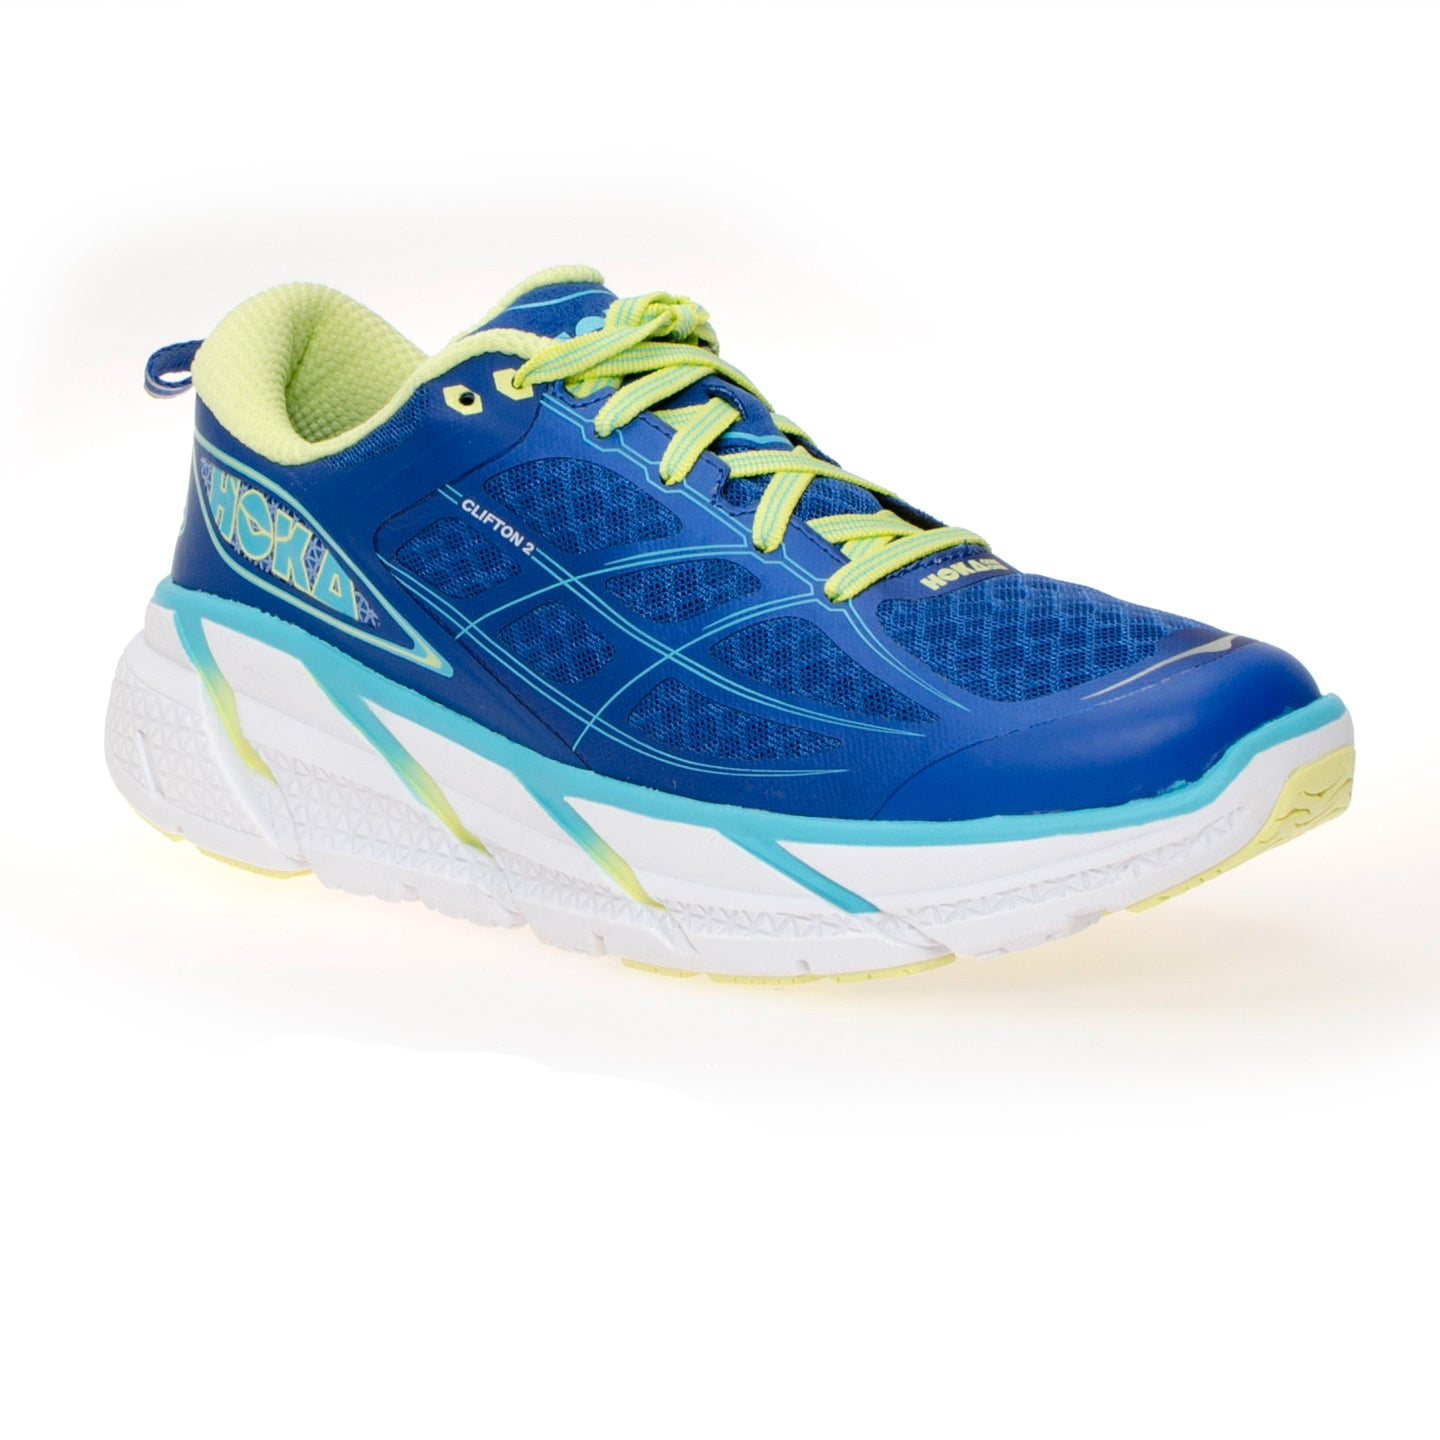 True Blue / Sunny Lime Running Shoes